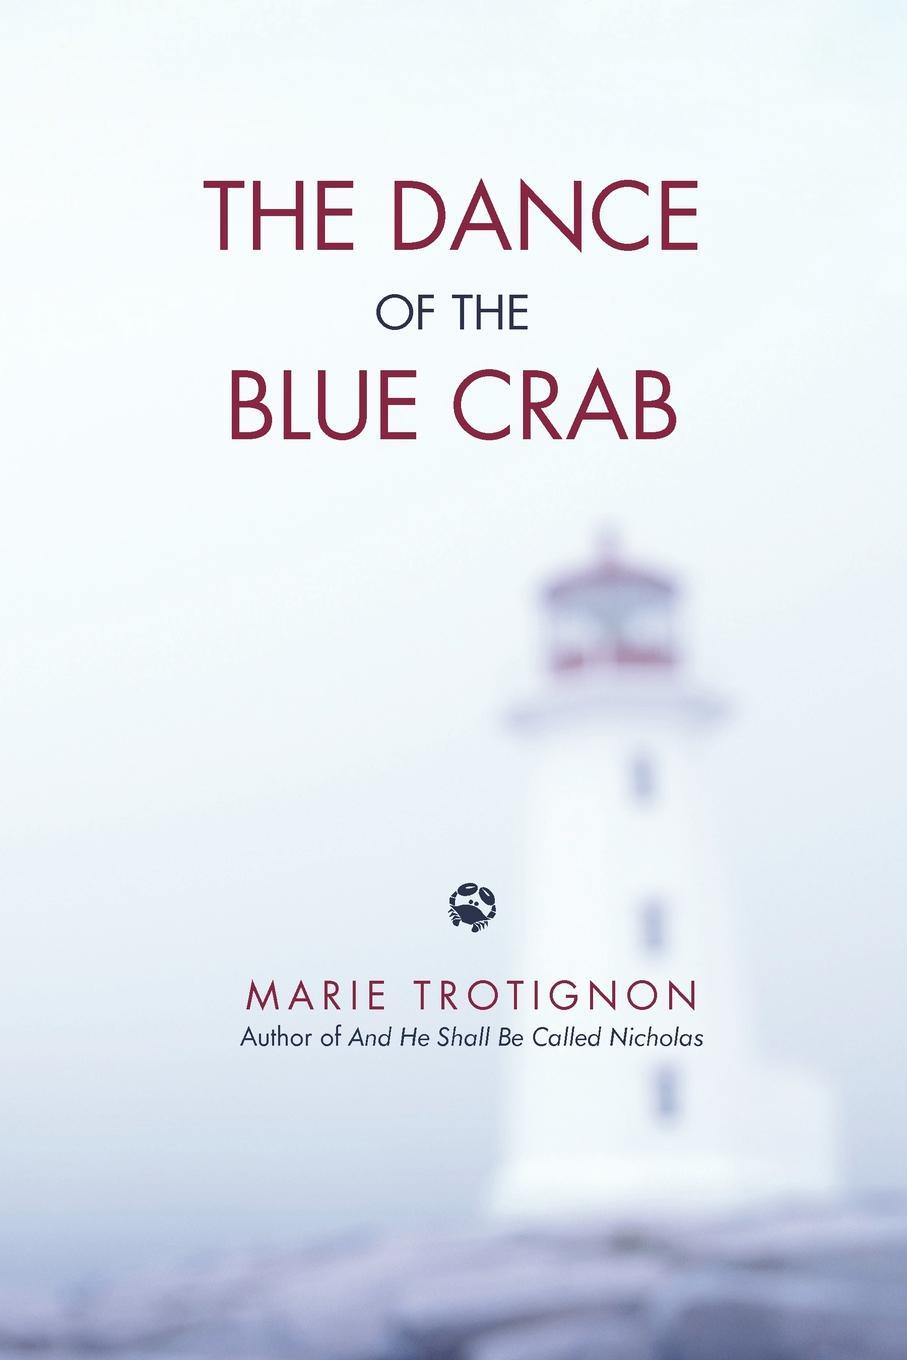 The Dance of the Blue Crab